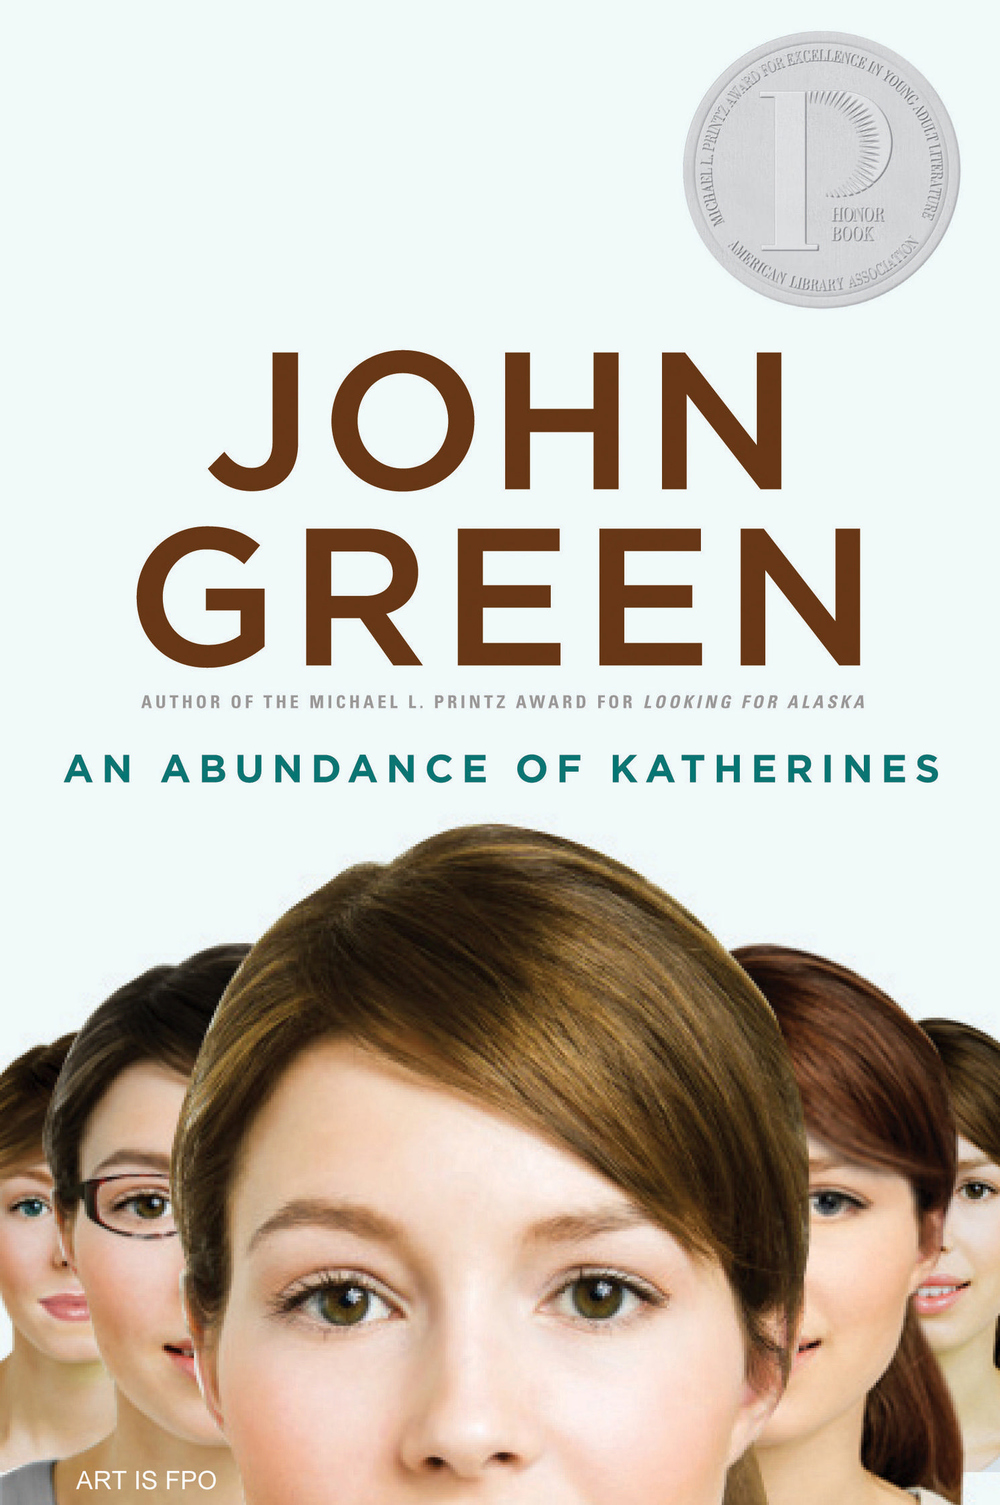 An Abundance of Katherines by John Green (via Teen Lit Rocks)